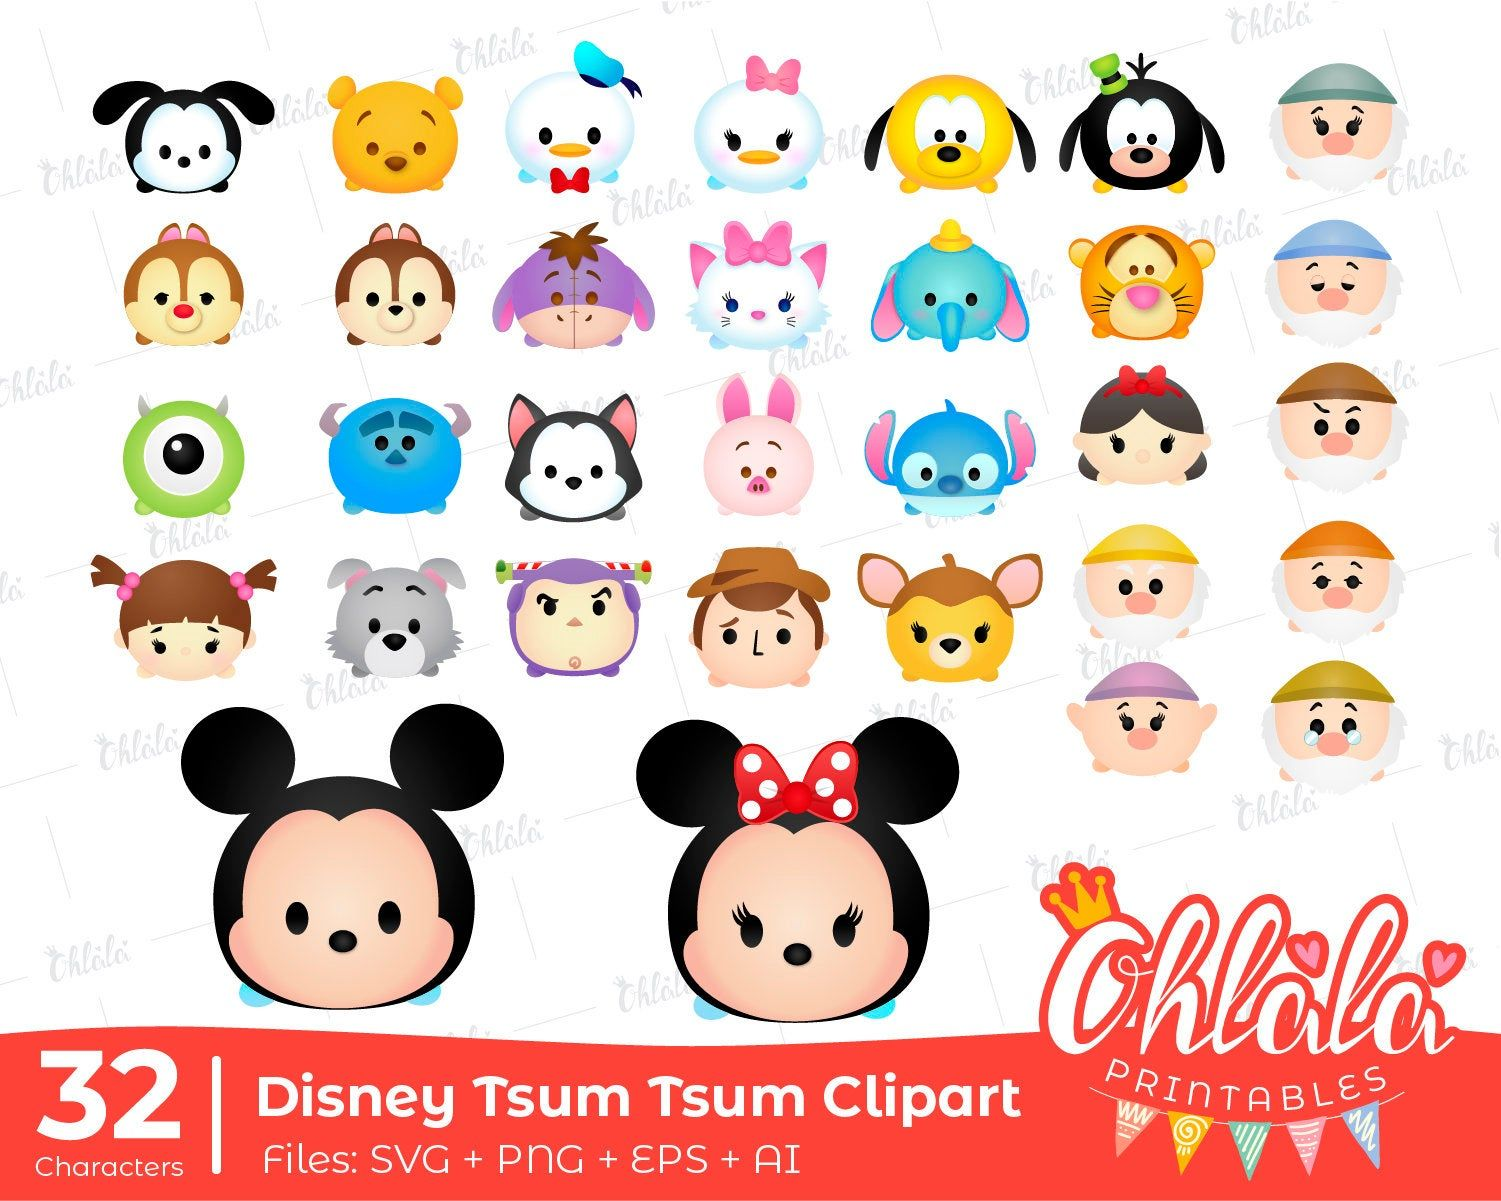 32 Cliparts Disney Tsum Tsum Characters Svg Png Eps Ai Scalable Vector Mickey Minnie Mouse Cute Silhouette De Pr Tsum Tsum Tsum Tsum Party Tsum Tsum Characters